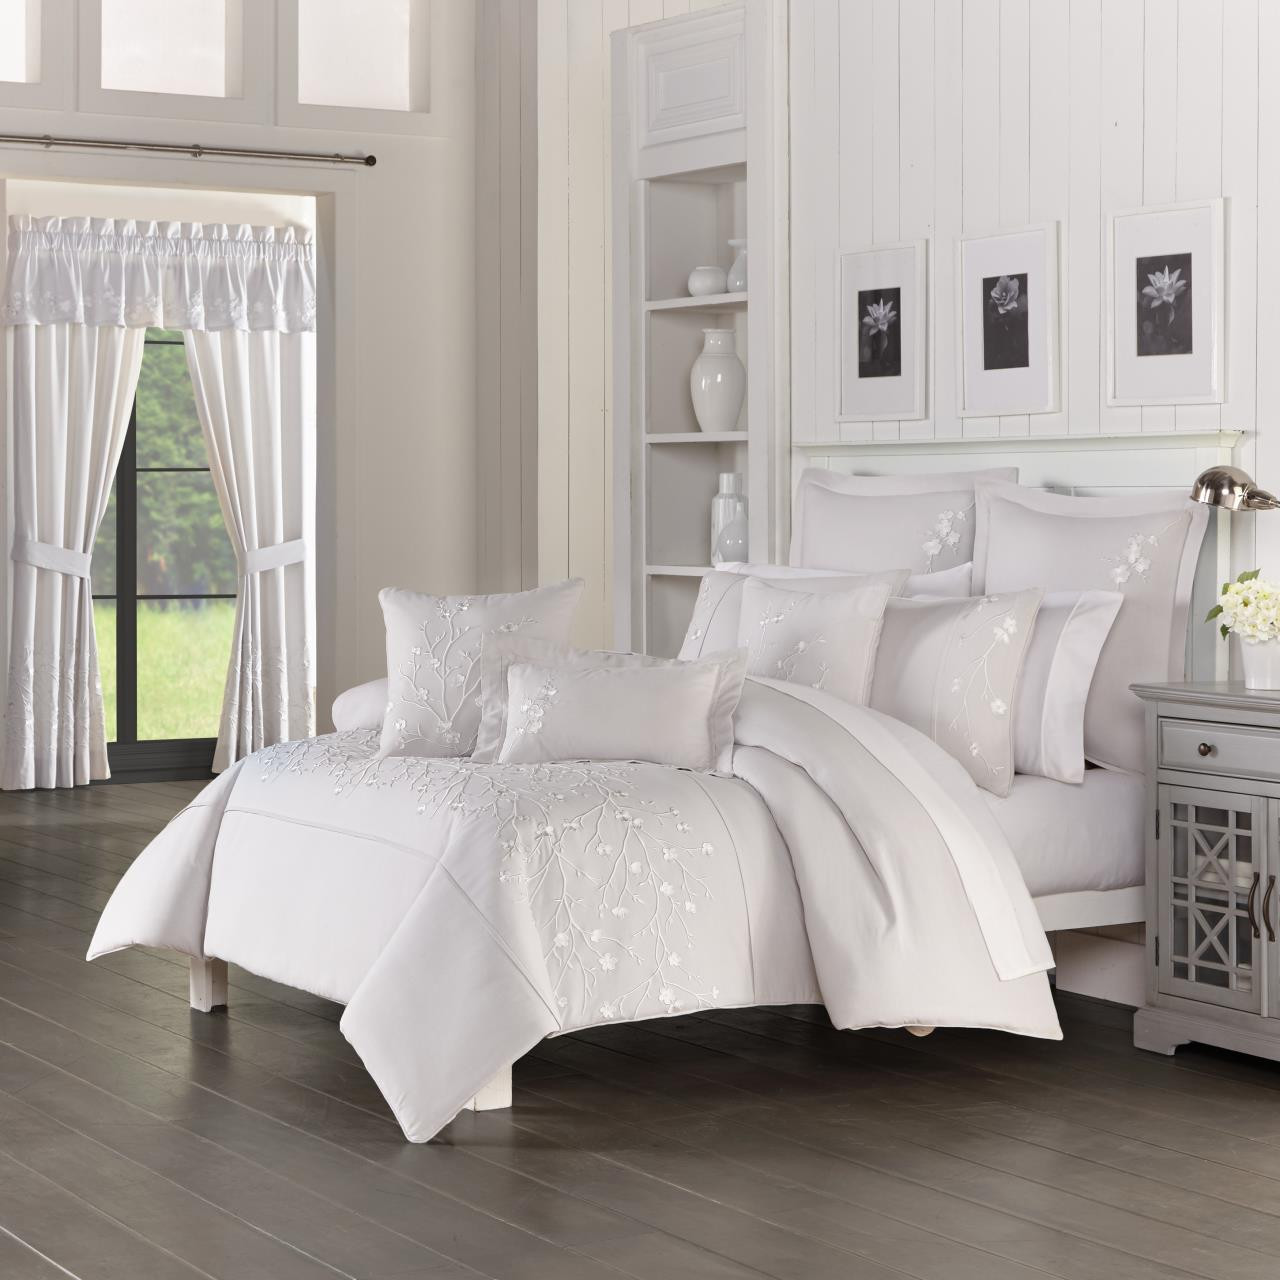 Cherry Blossom Grey Comforter Collection -